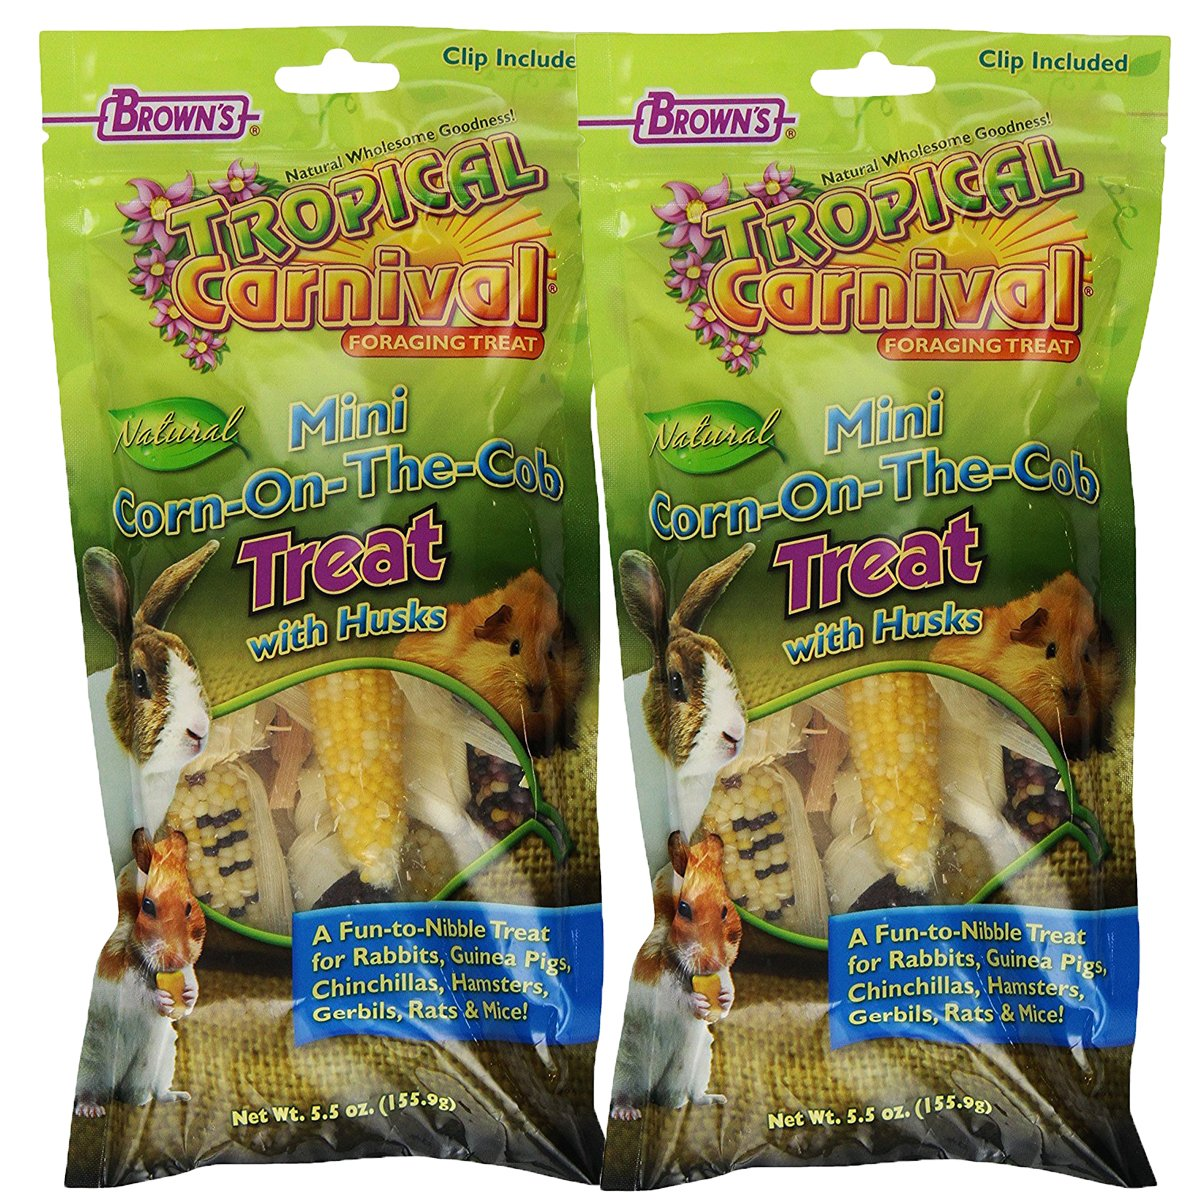 Brown's Tropical Carnival Mini Corn-on-the-Cob with Husks Foraging Treats, 2-Pack by F.M. Brown's